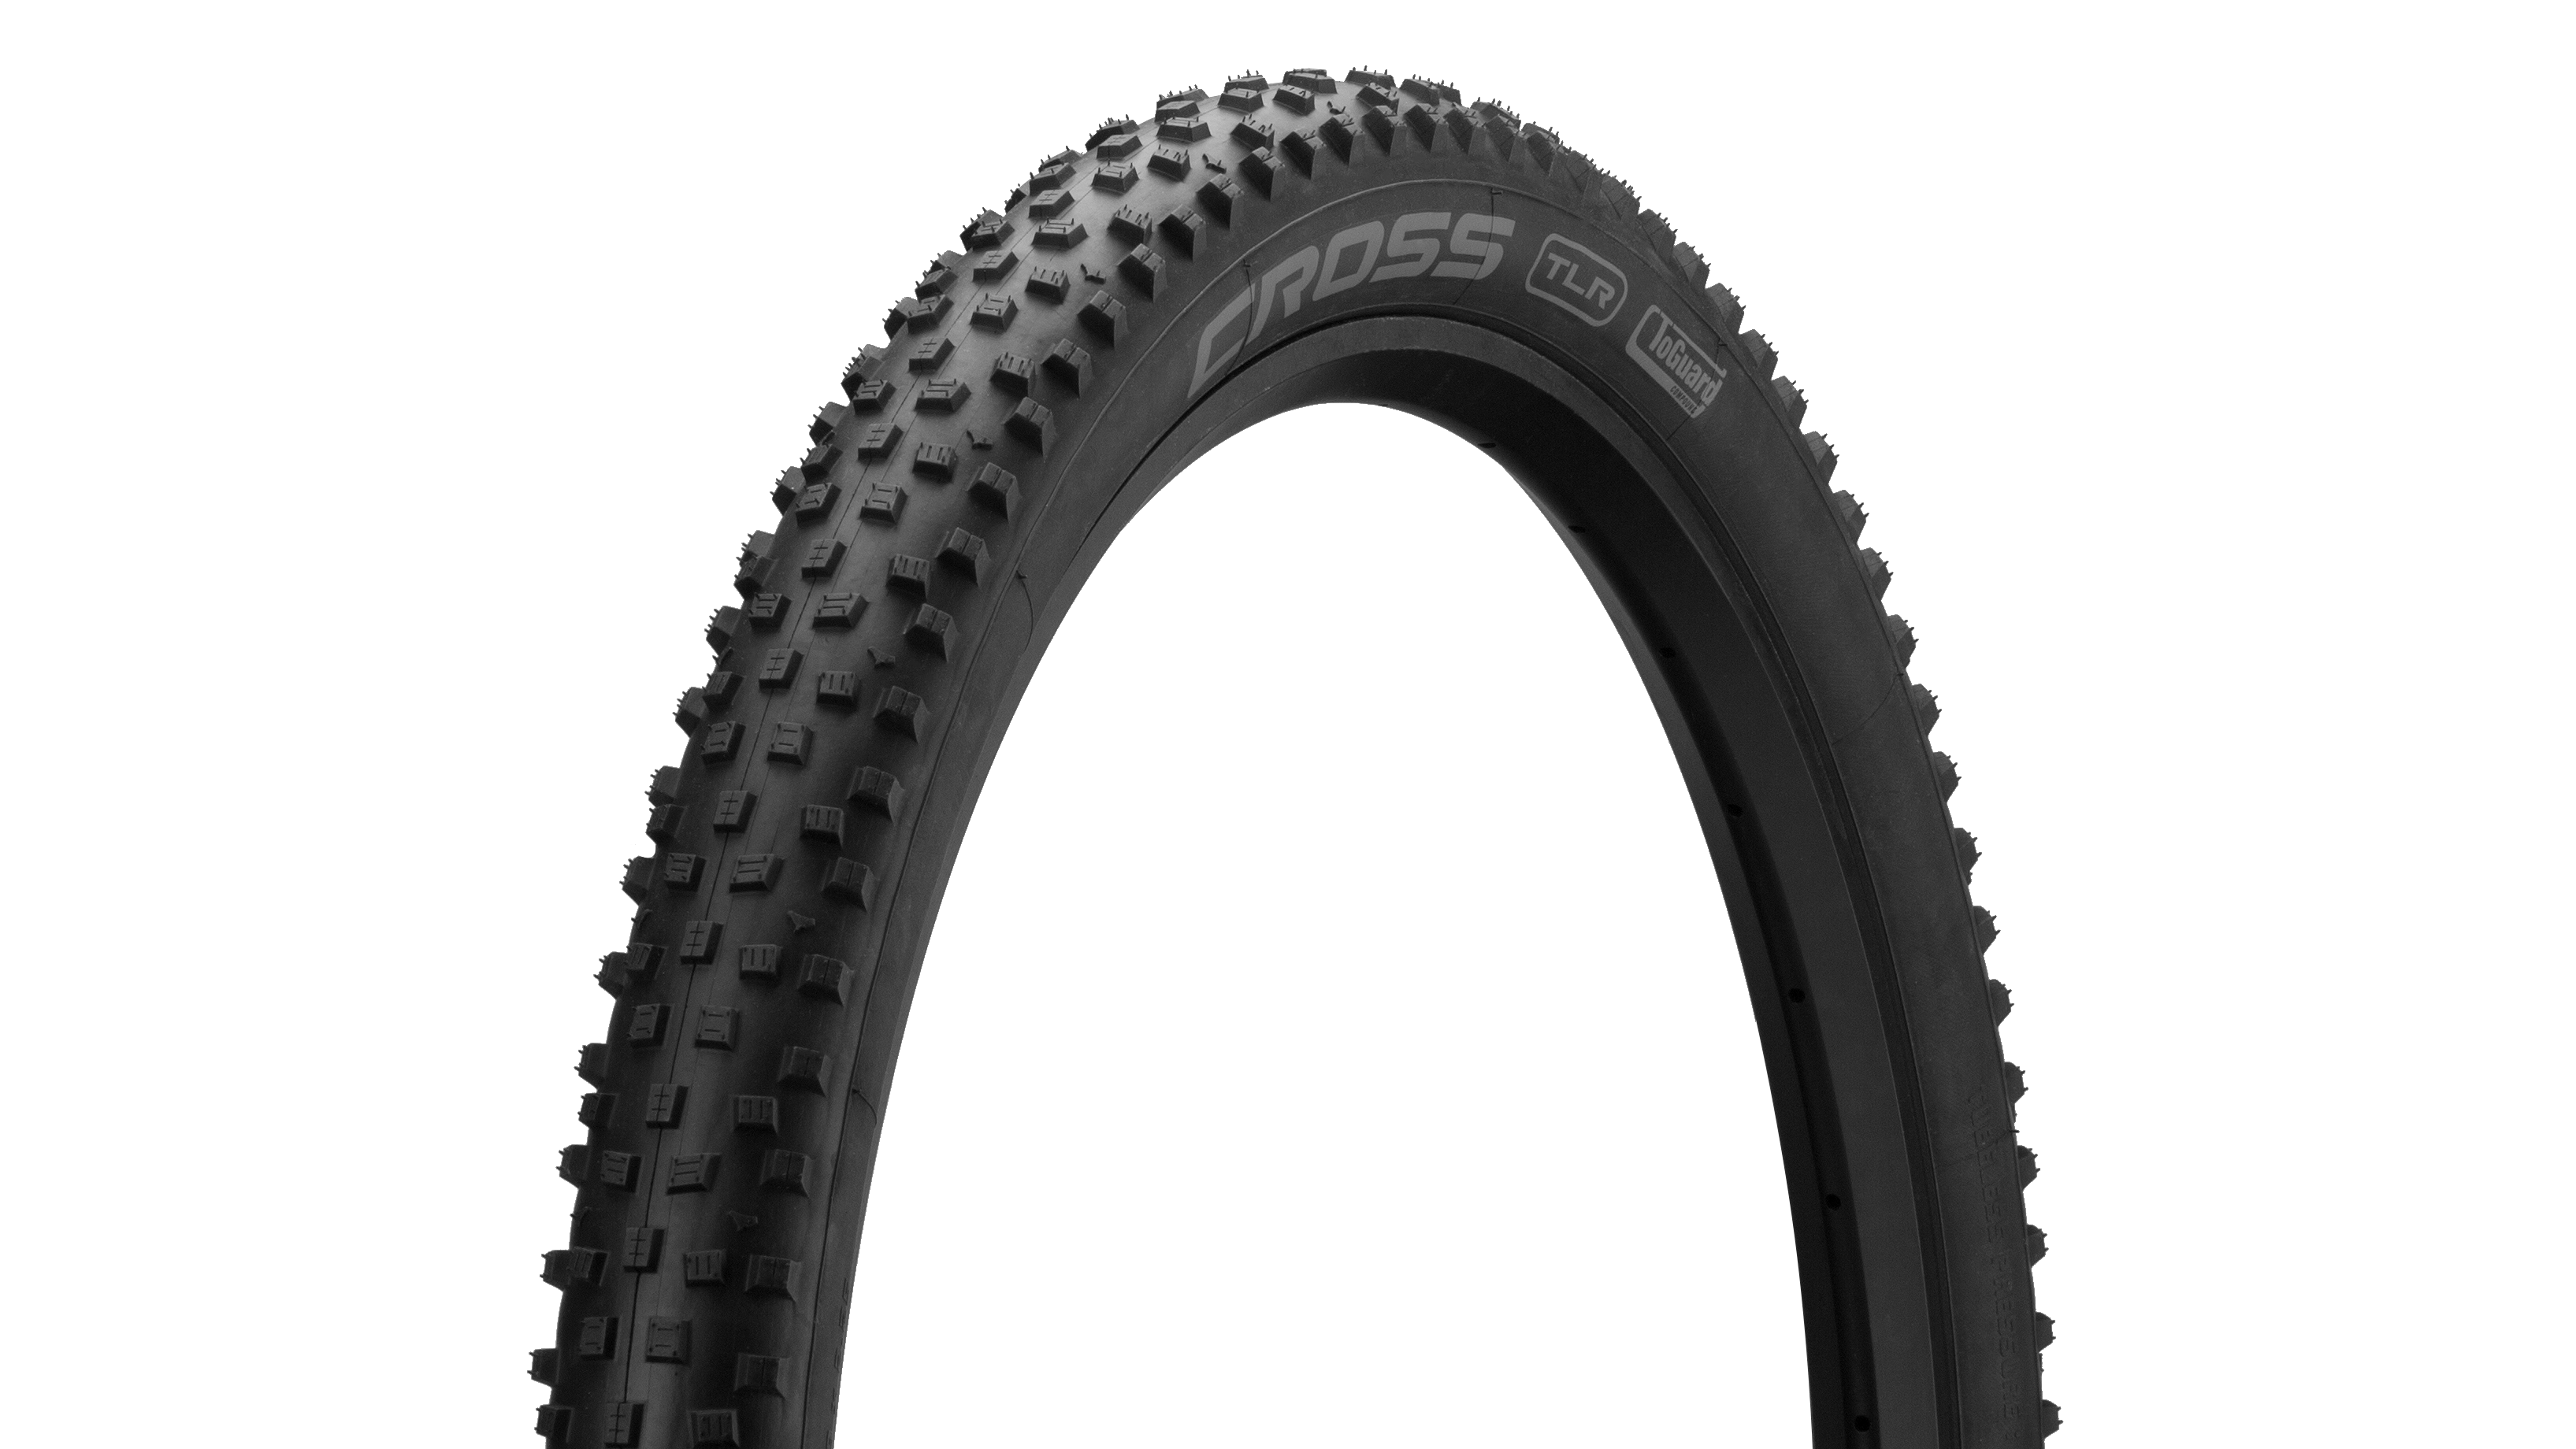 wolfpack tyres, cotic bikes, mountain bike, 29er xc bike